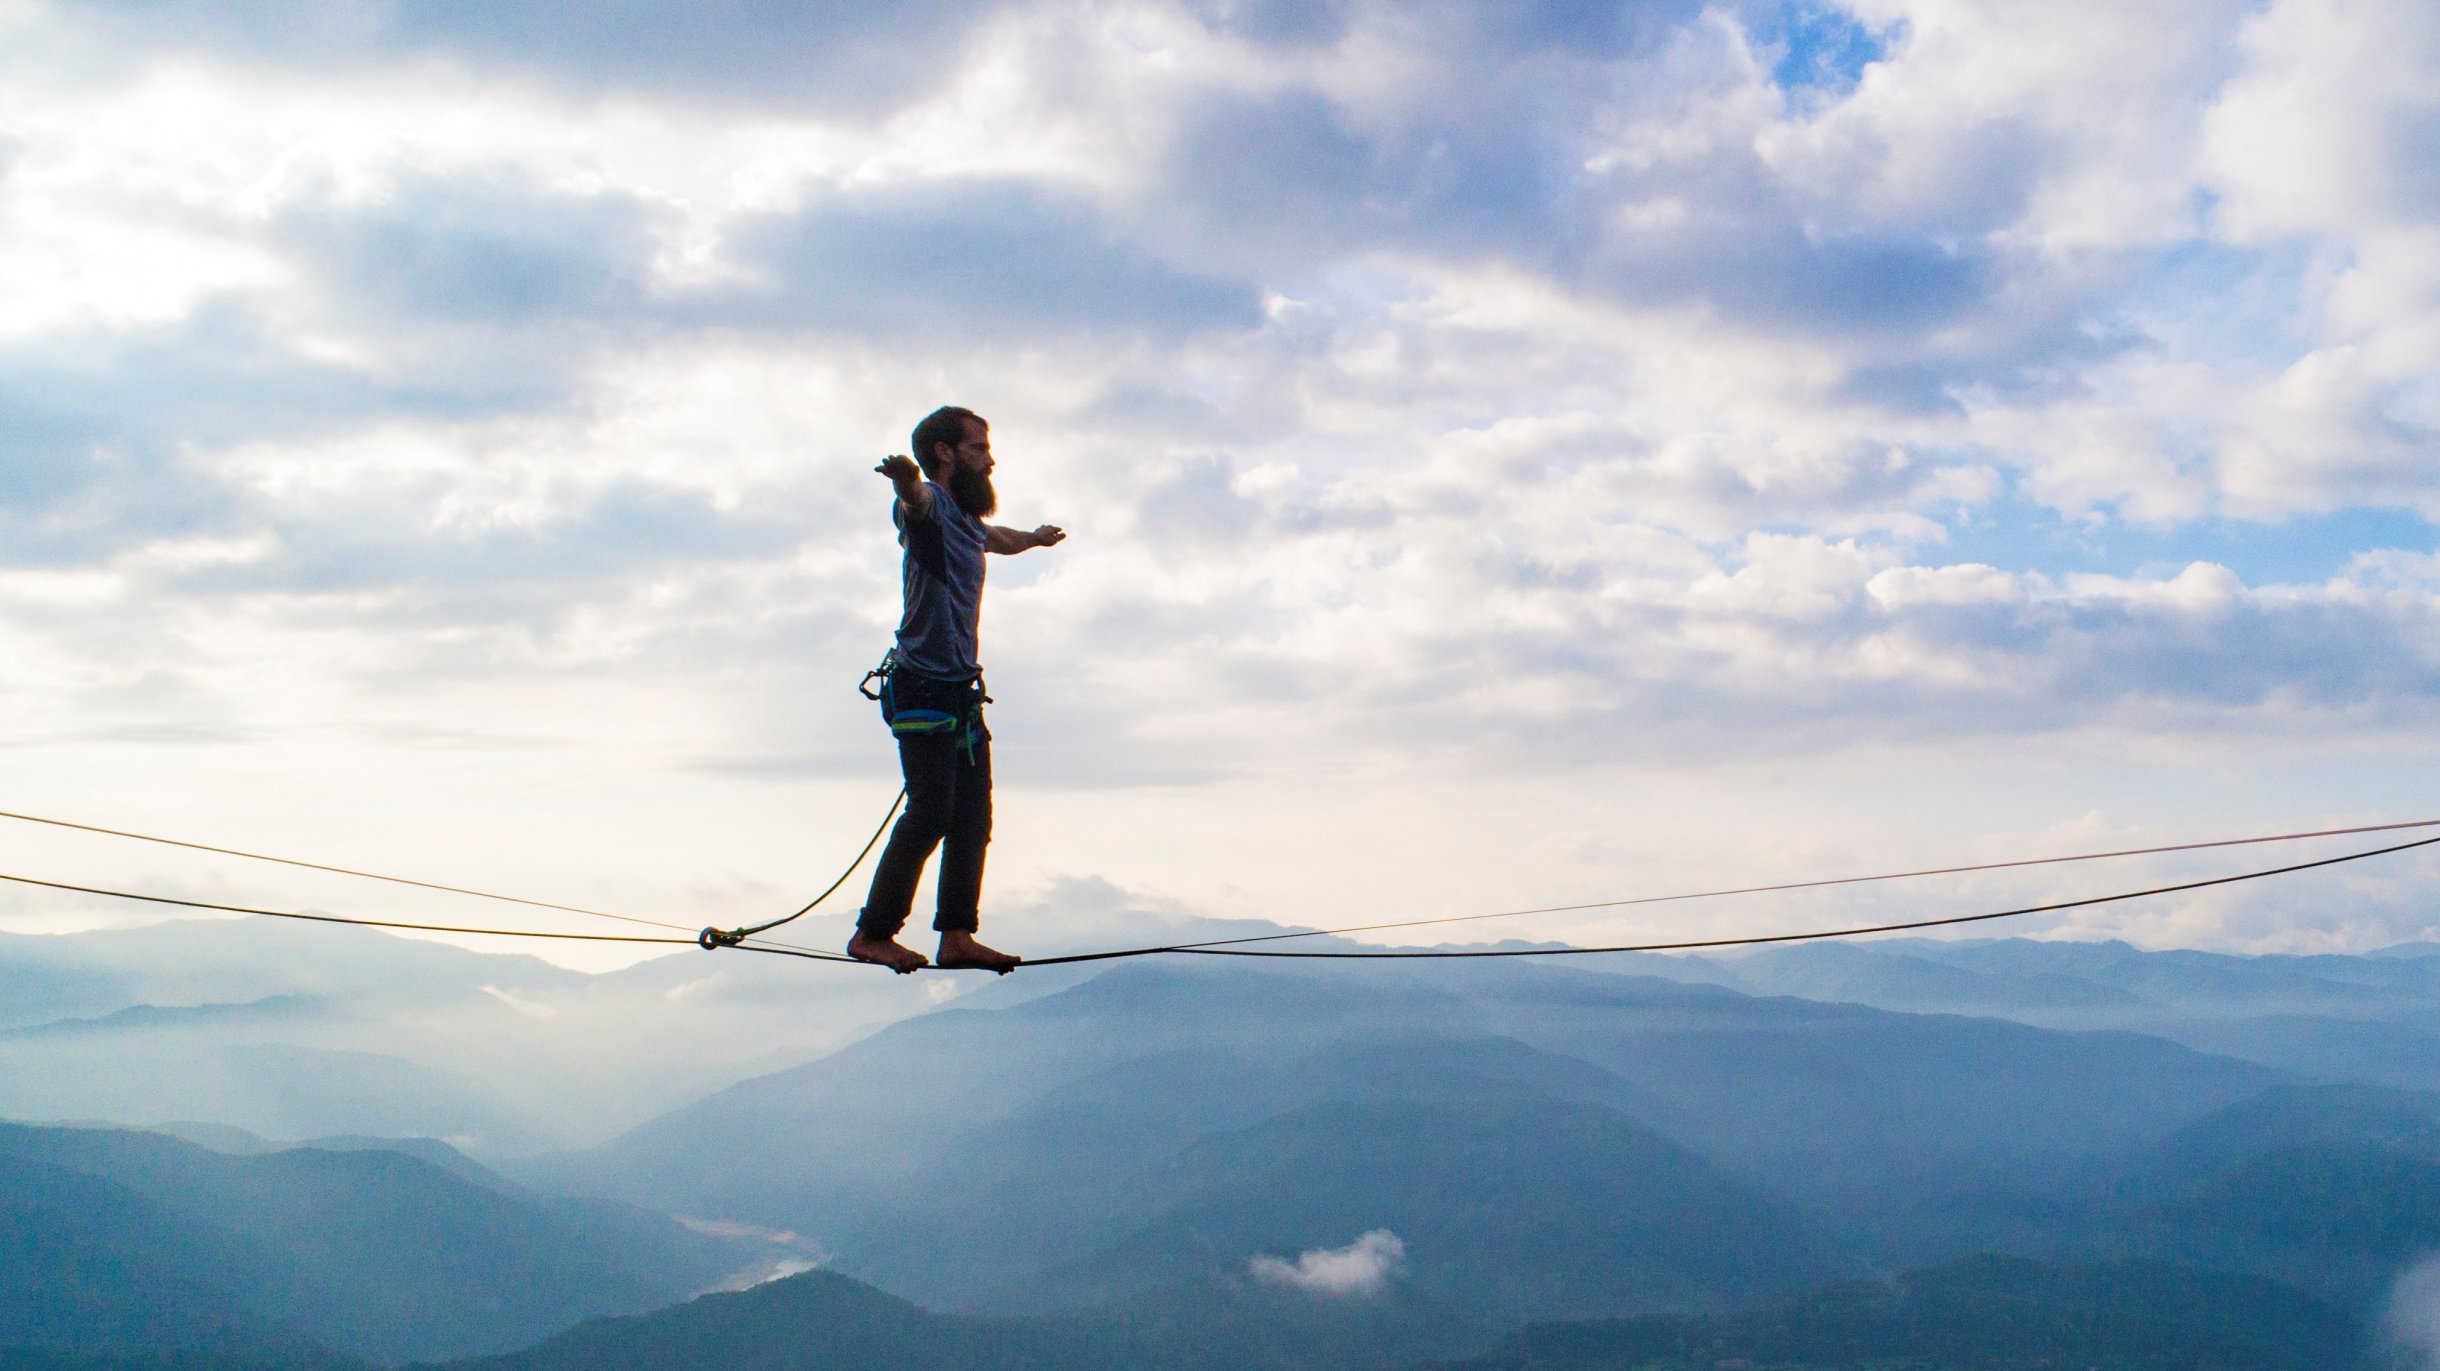 RCS: Walking the commerce tightrope